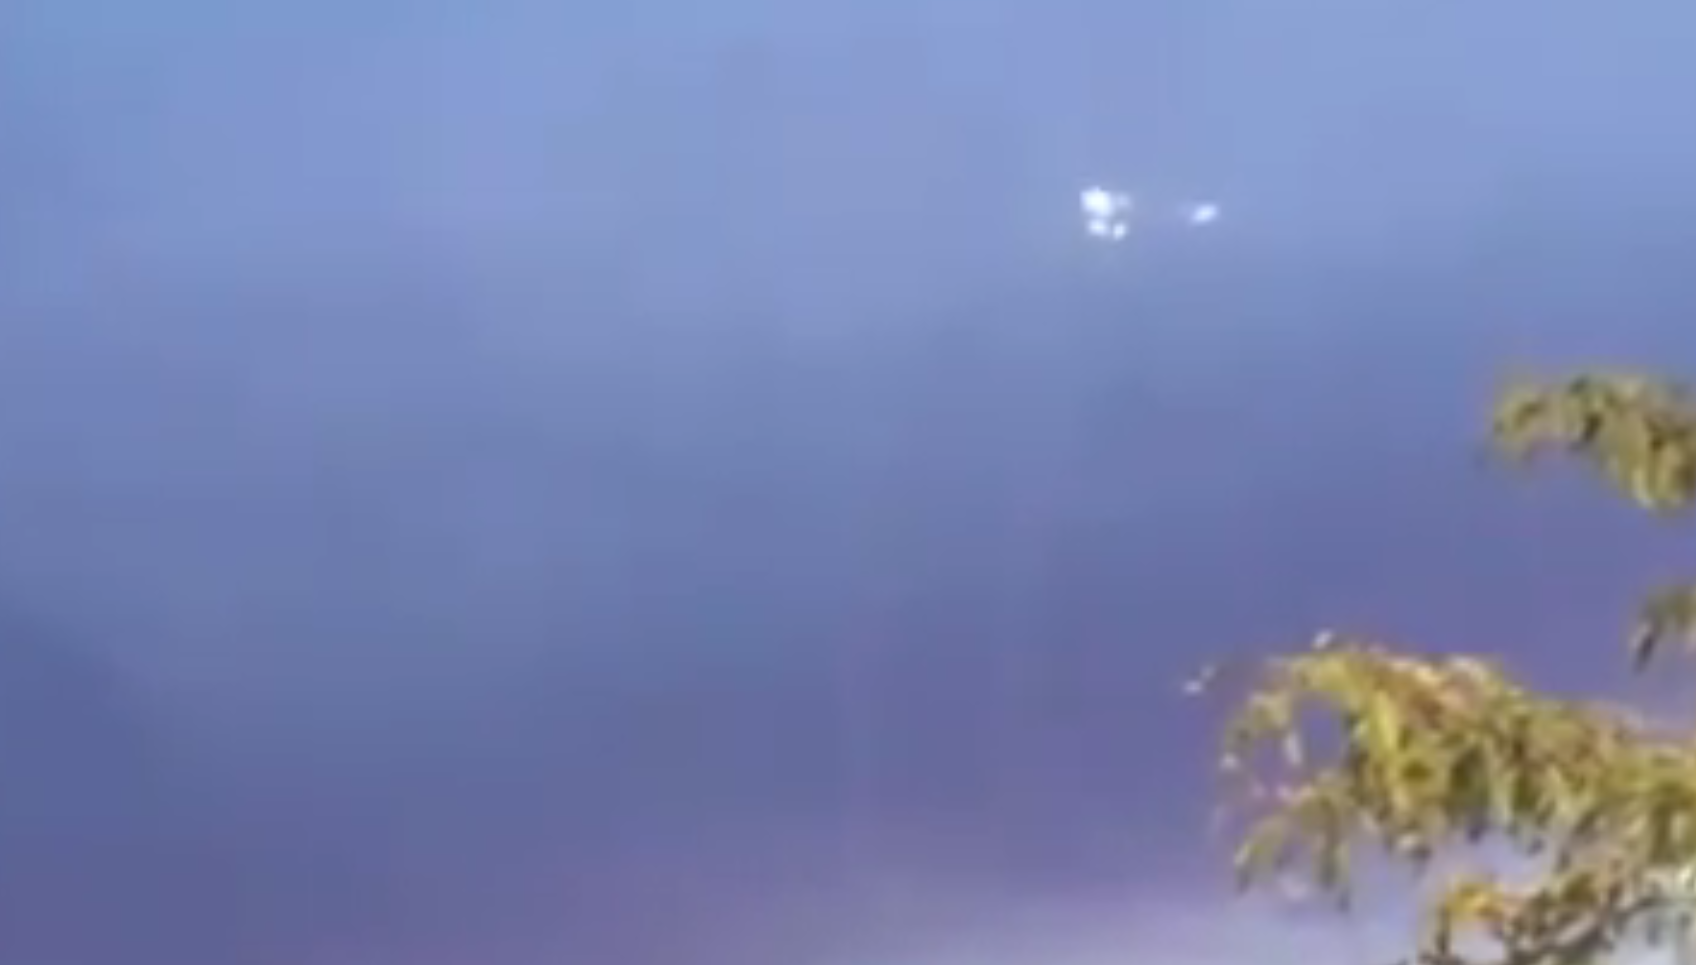 UFO Sighting filmed above Concord, New Hampshire – 21st Sep 2015